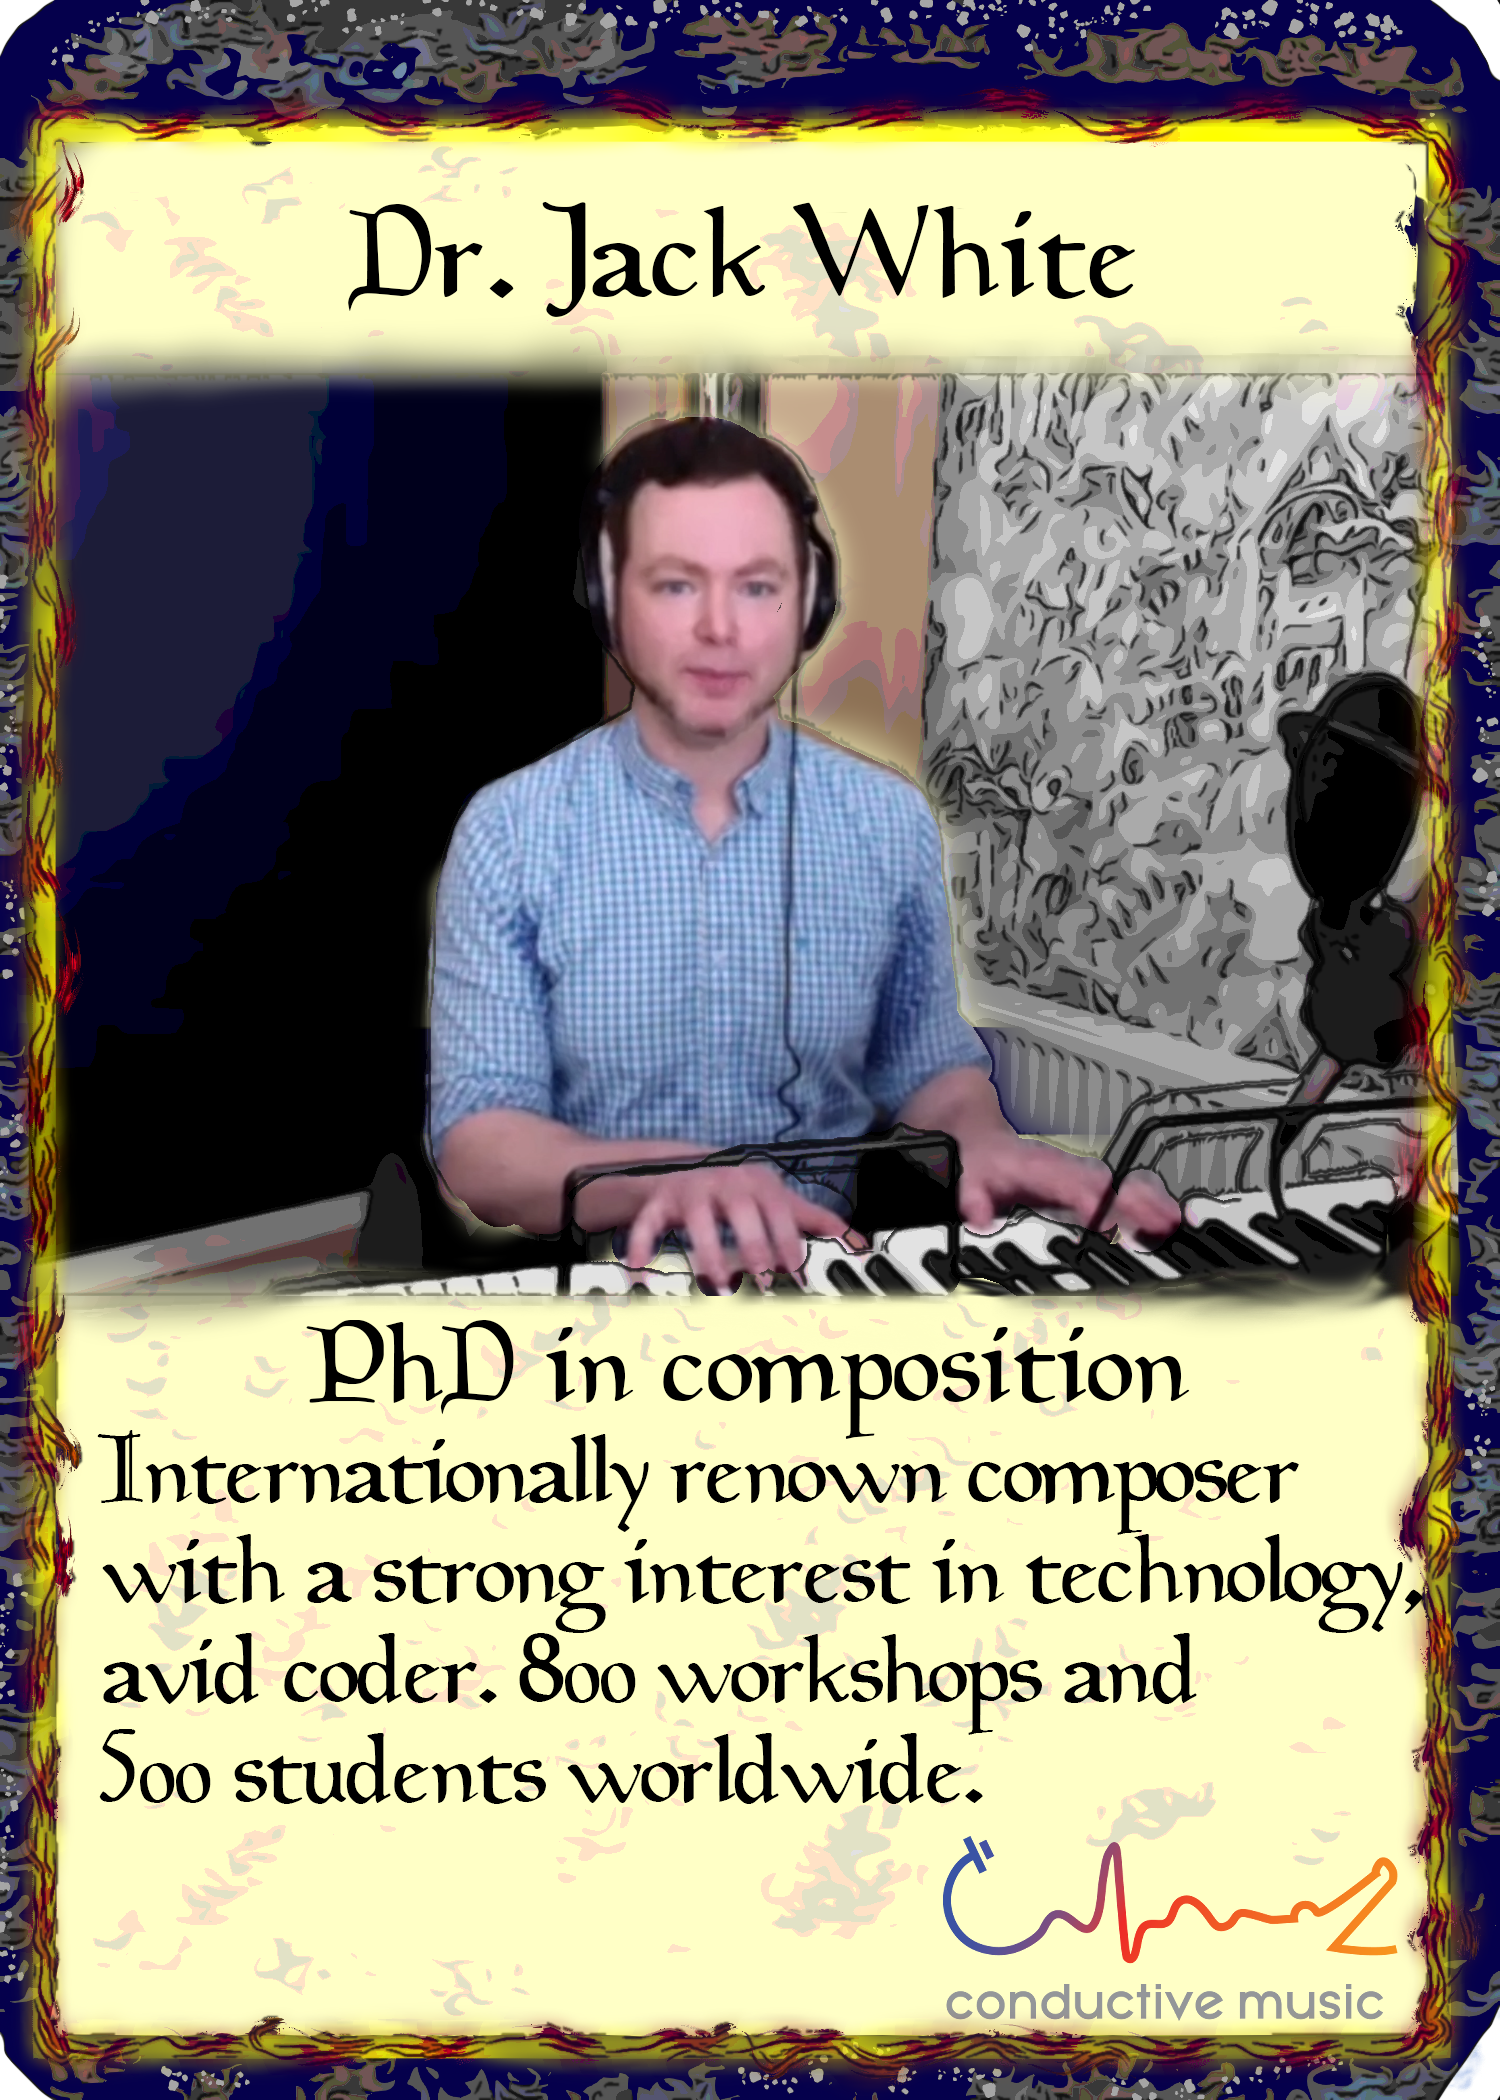 Dr. Jack White. PhD in Composition, internationally renown composer with a strong interest in technology, avid coder. 800+ workshops and 500+ students worldwide.